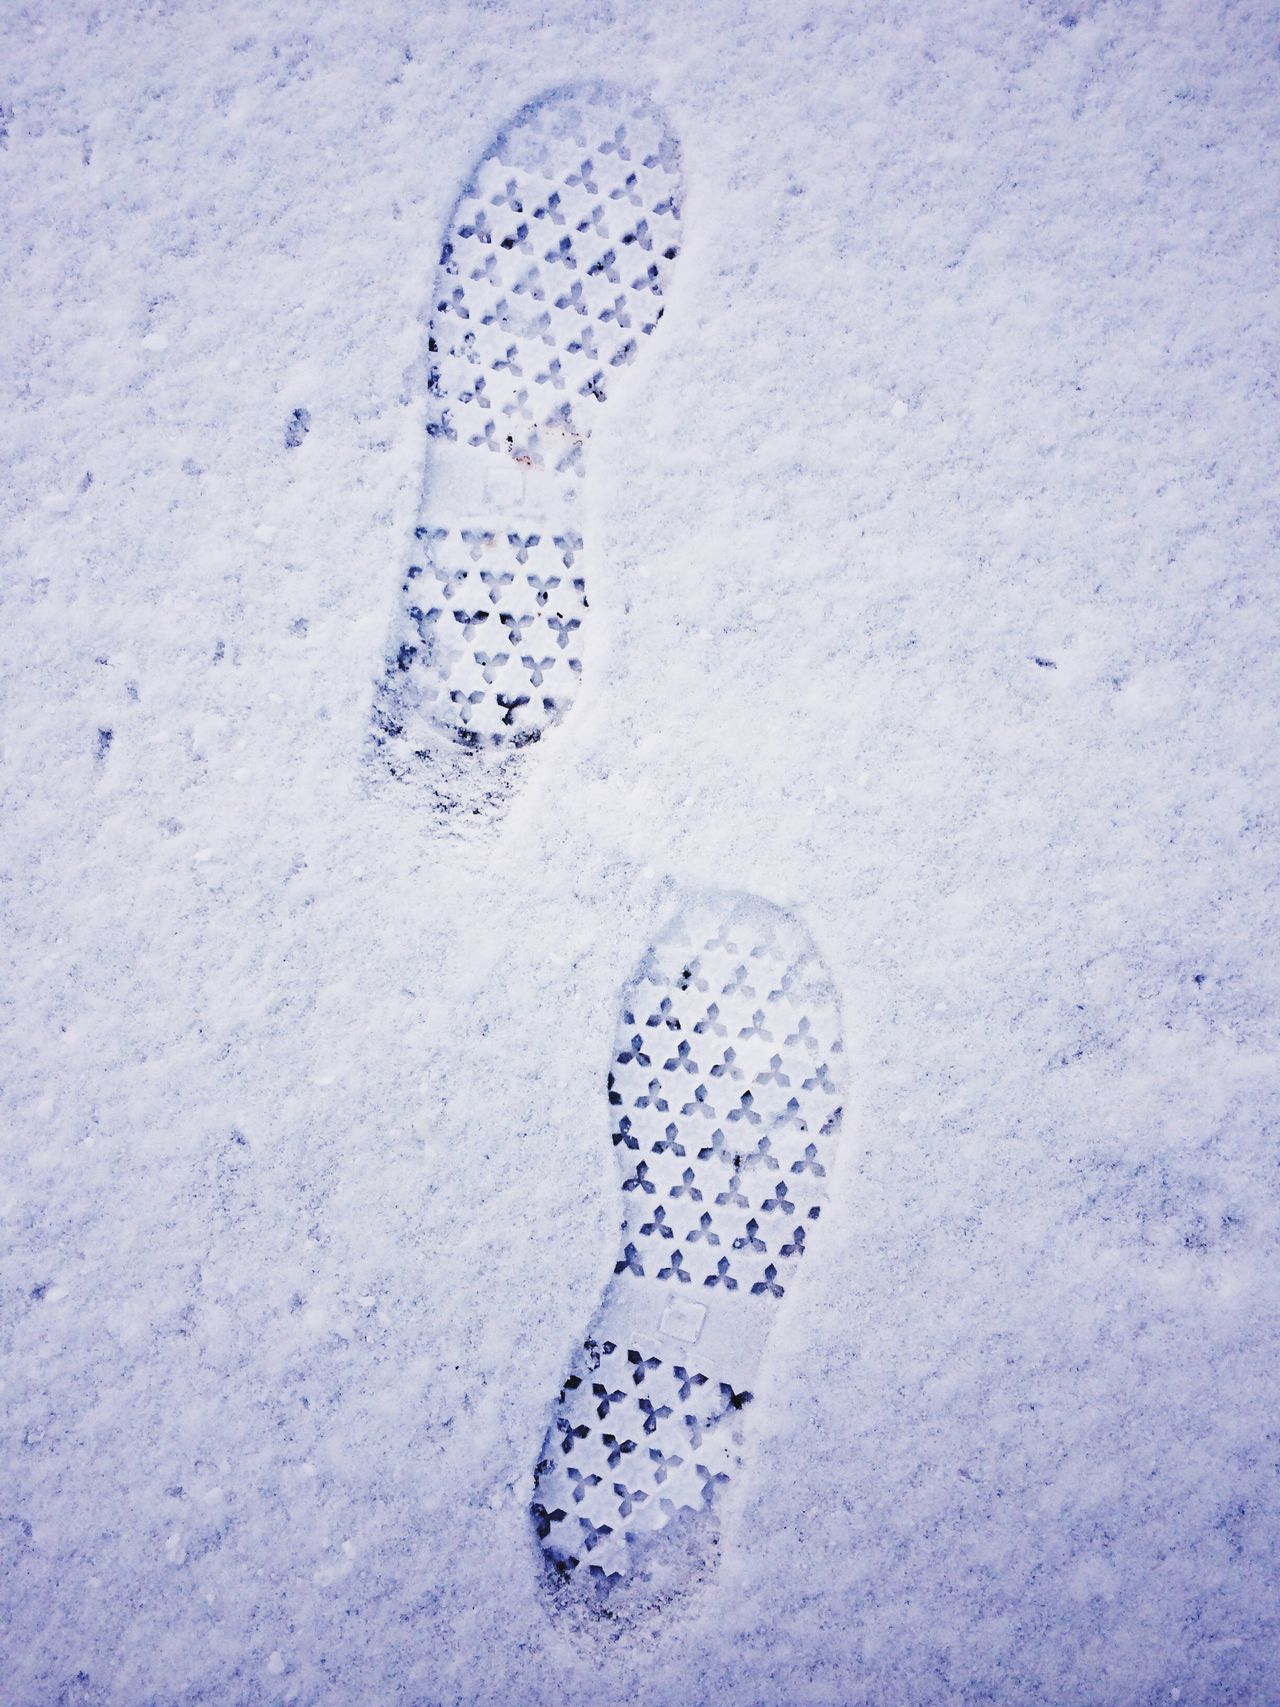 Footprints in the snow. New Jersey, USA. Photo by Tom Bland. Outdoors IPhone IPhoneography Winter Weather Winter Snow New Jersey USA Footprints Footprints In The Snow Tracks Looking Down Male Human Snowy Underfoot Grip Traction